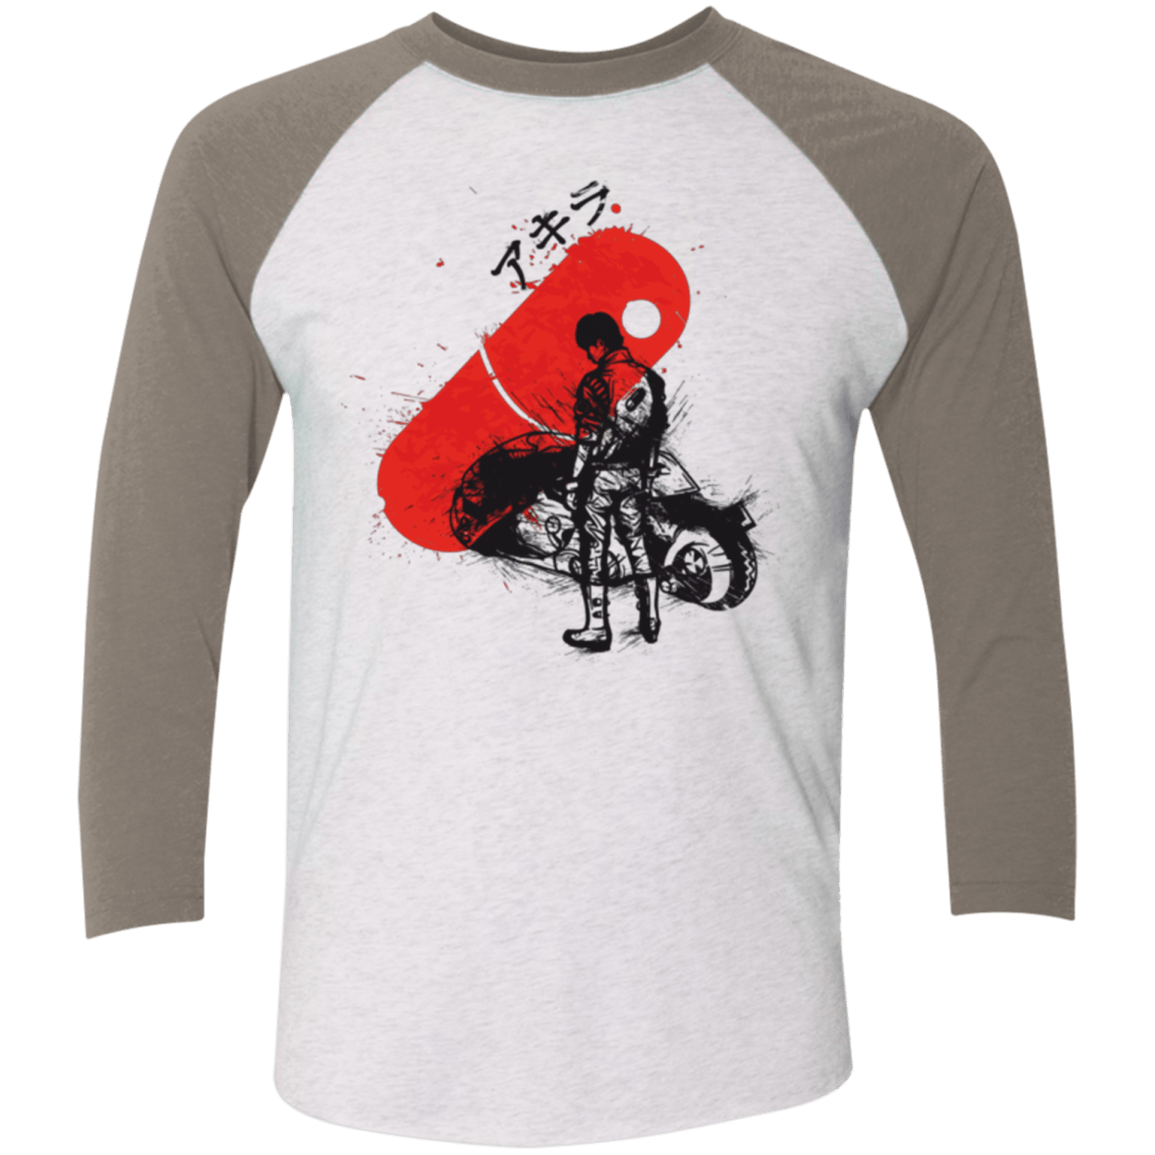 T-Shirts Heather White/Vintage Grey / X-Small RED SUN AKIRA Men's Triblend 3/4 Sleeve